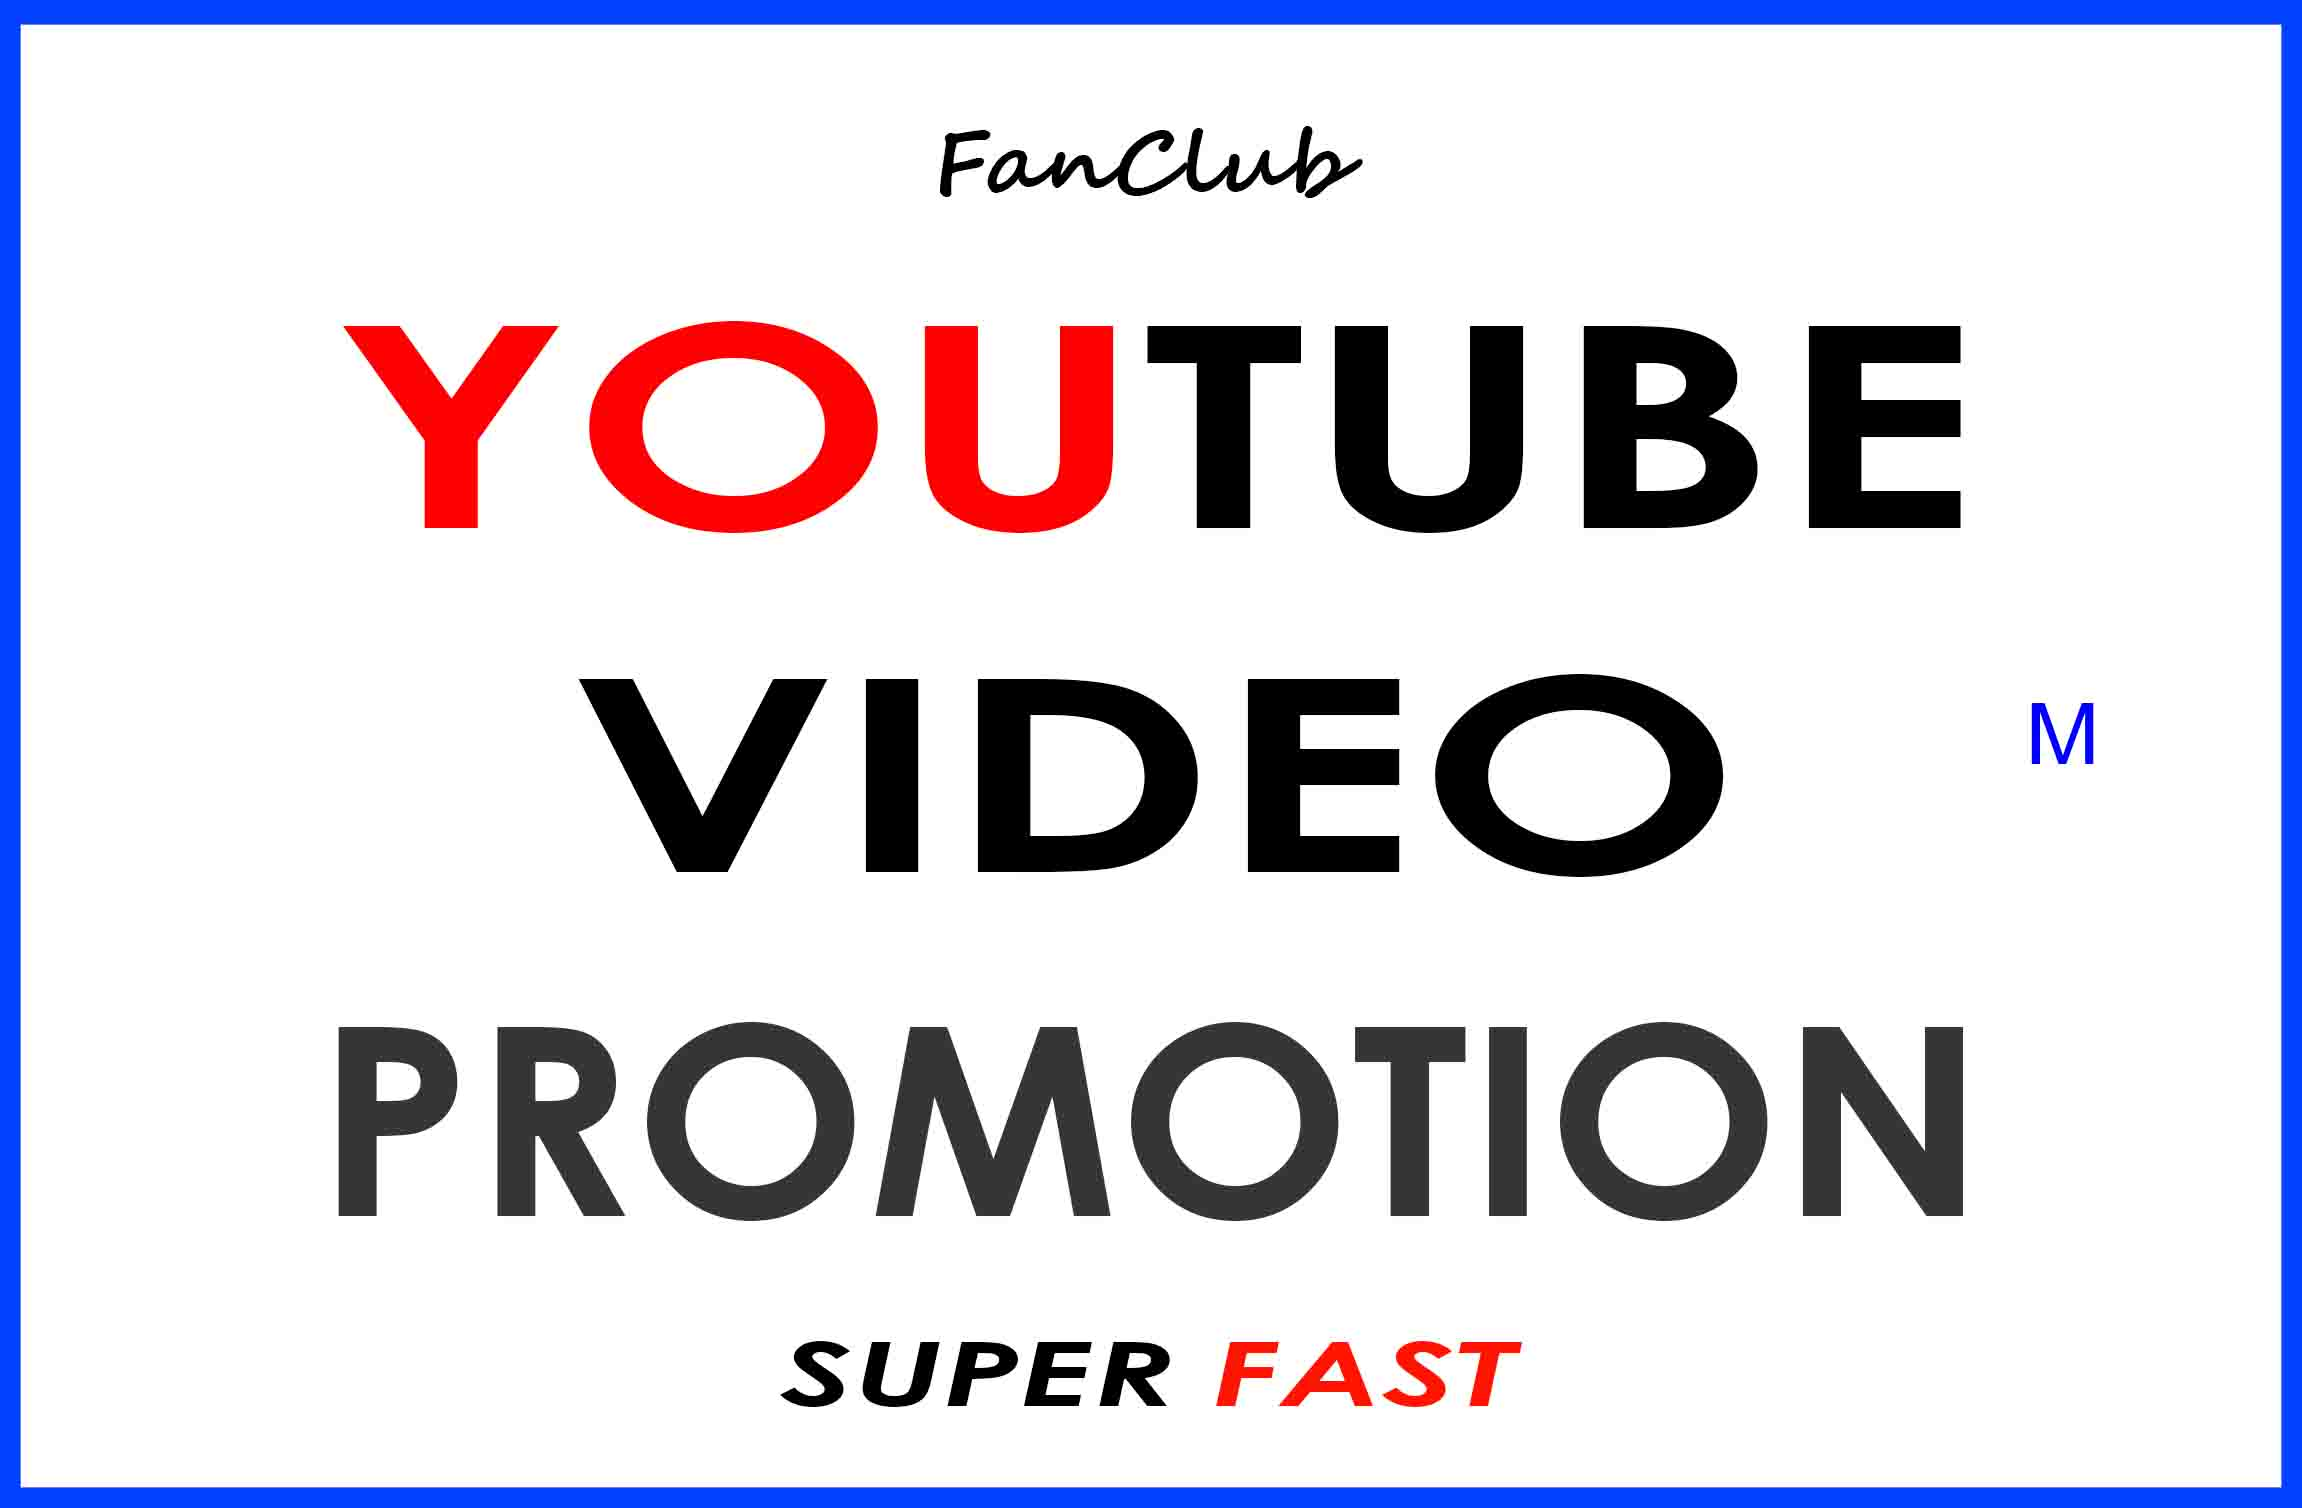 YOUTUBE VIDEO PROMOTION AND MARKETING REAL AND ORGANIC SUPER FAST SERVICE